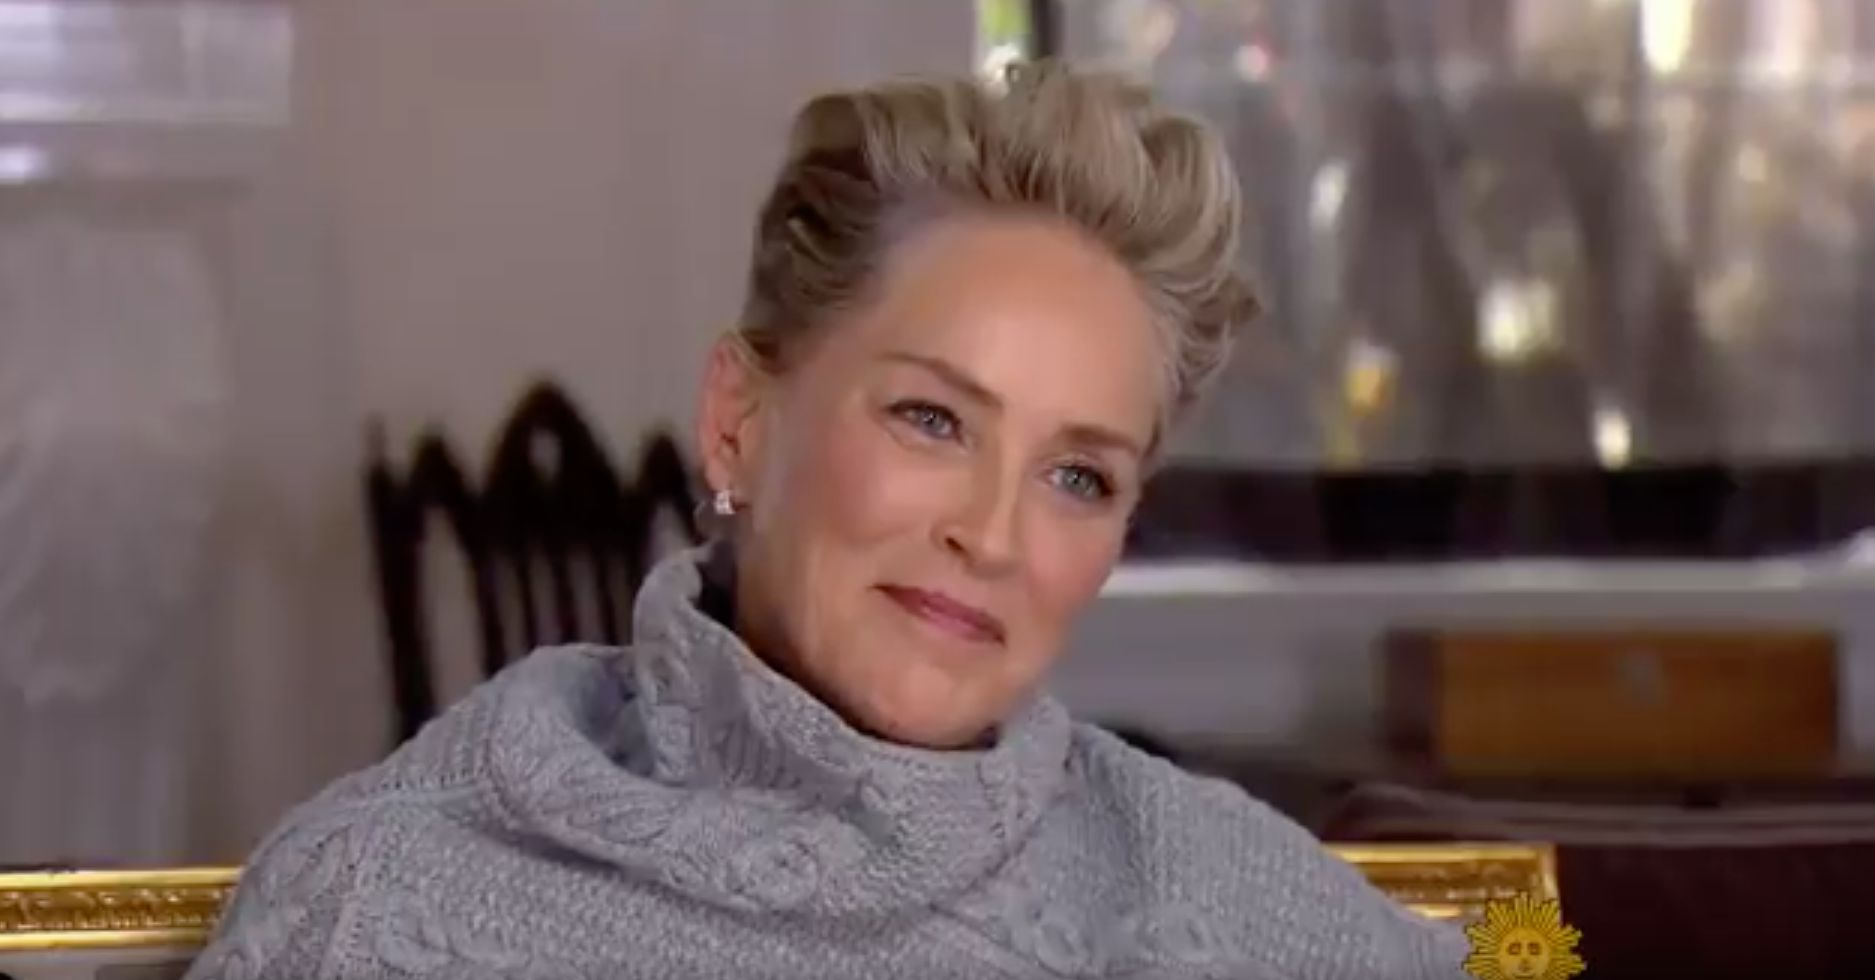 Sharon Stone On Film Industry Sexual Harassment: 'I've Seen It All'